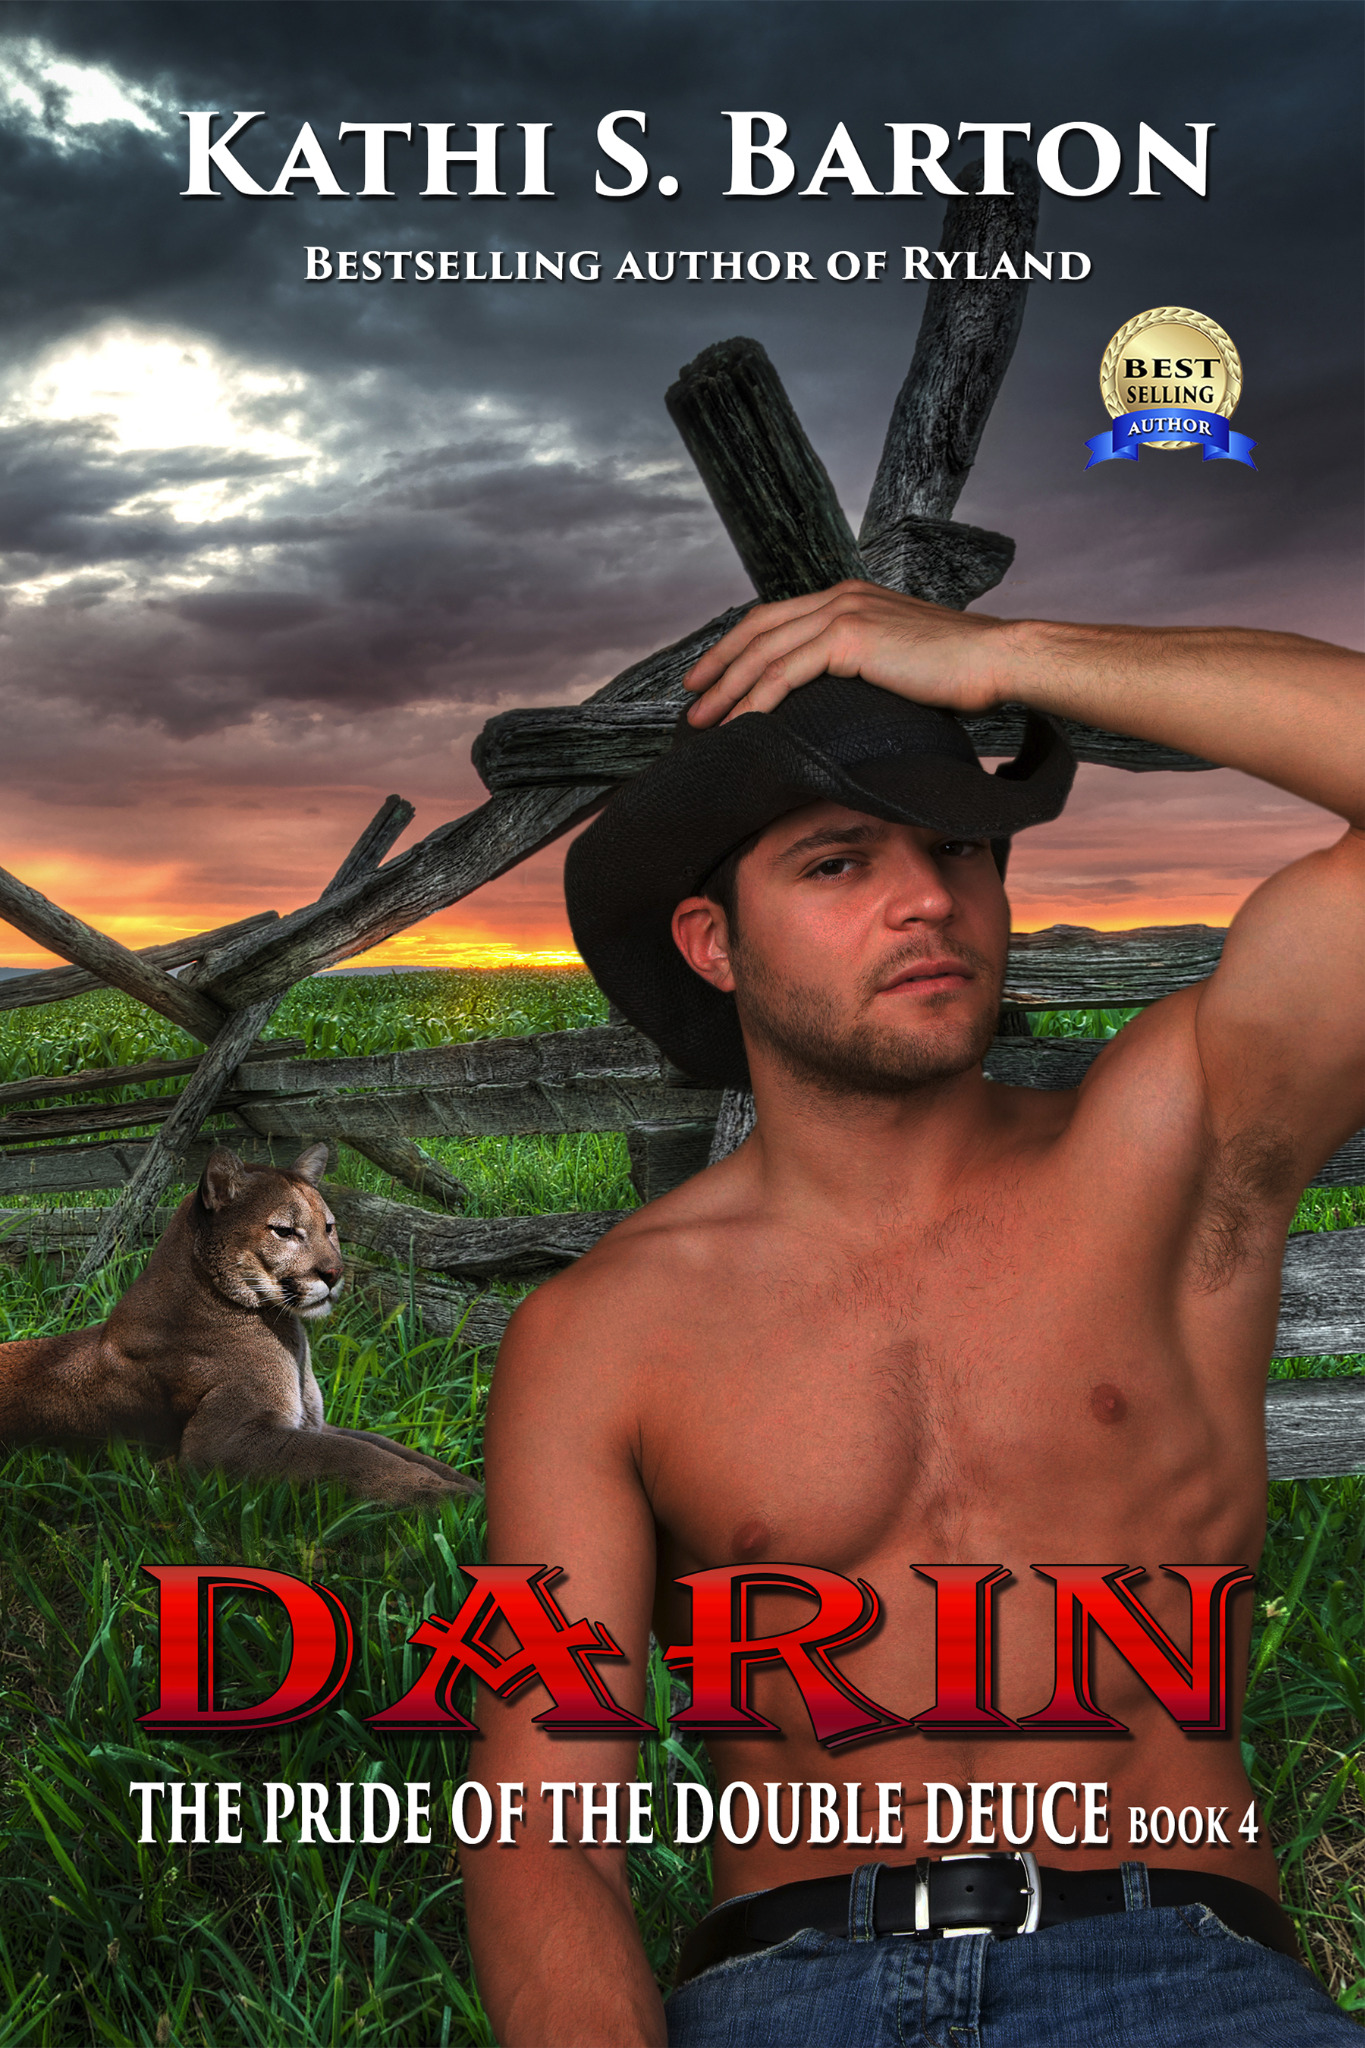 Darin - The Pride of the Double Deuce Book 4